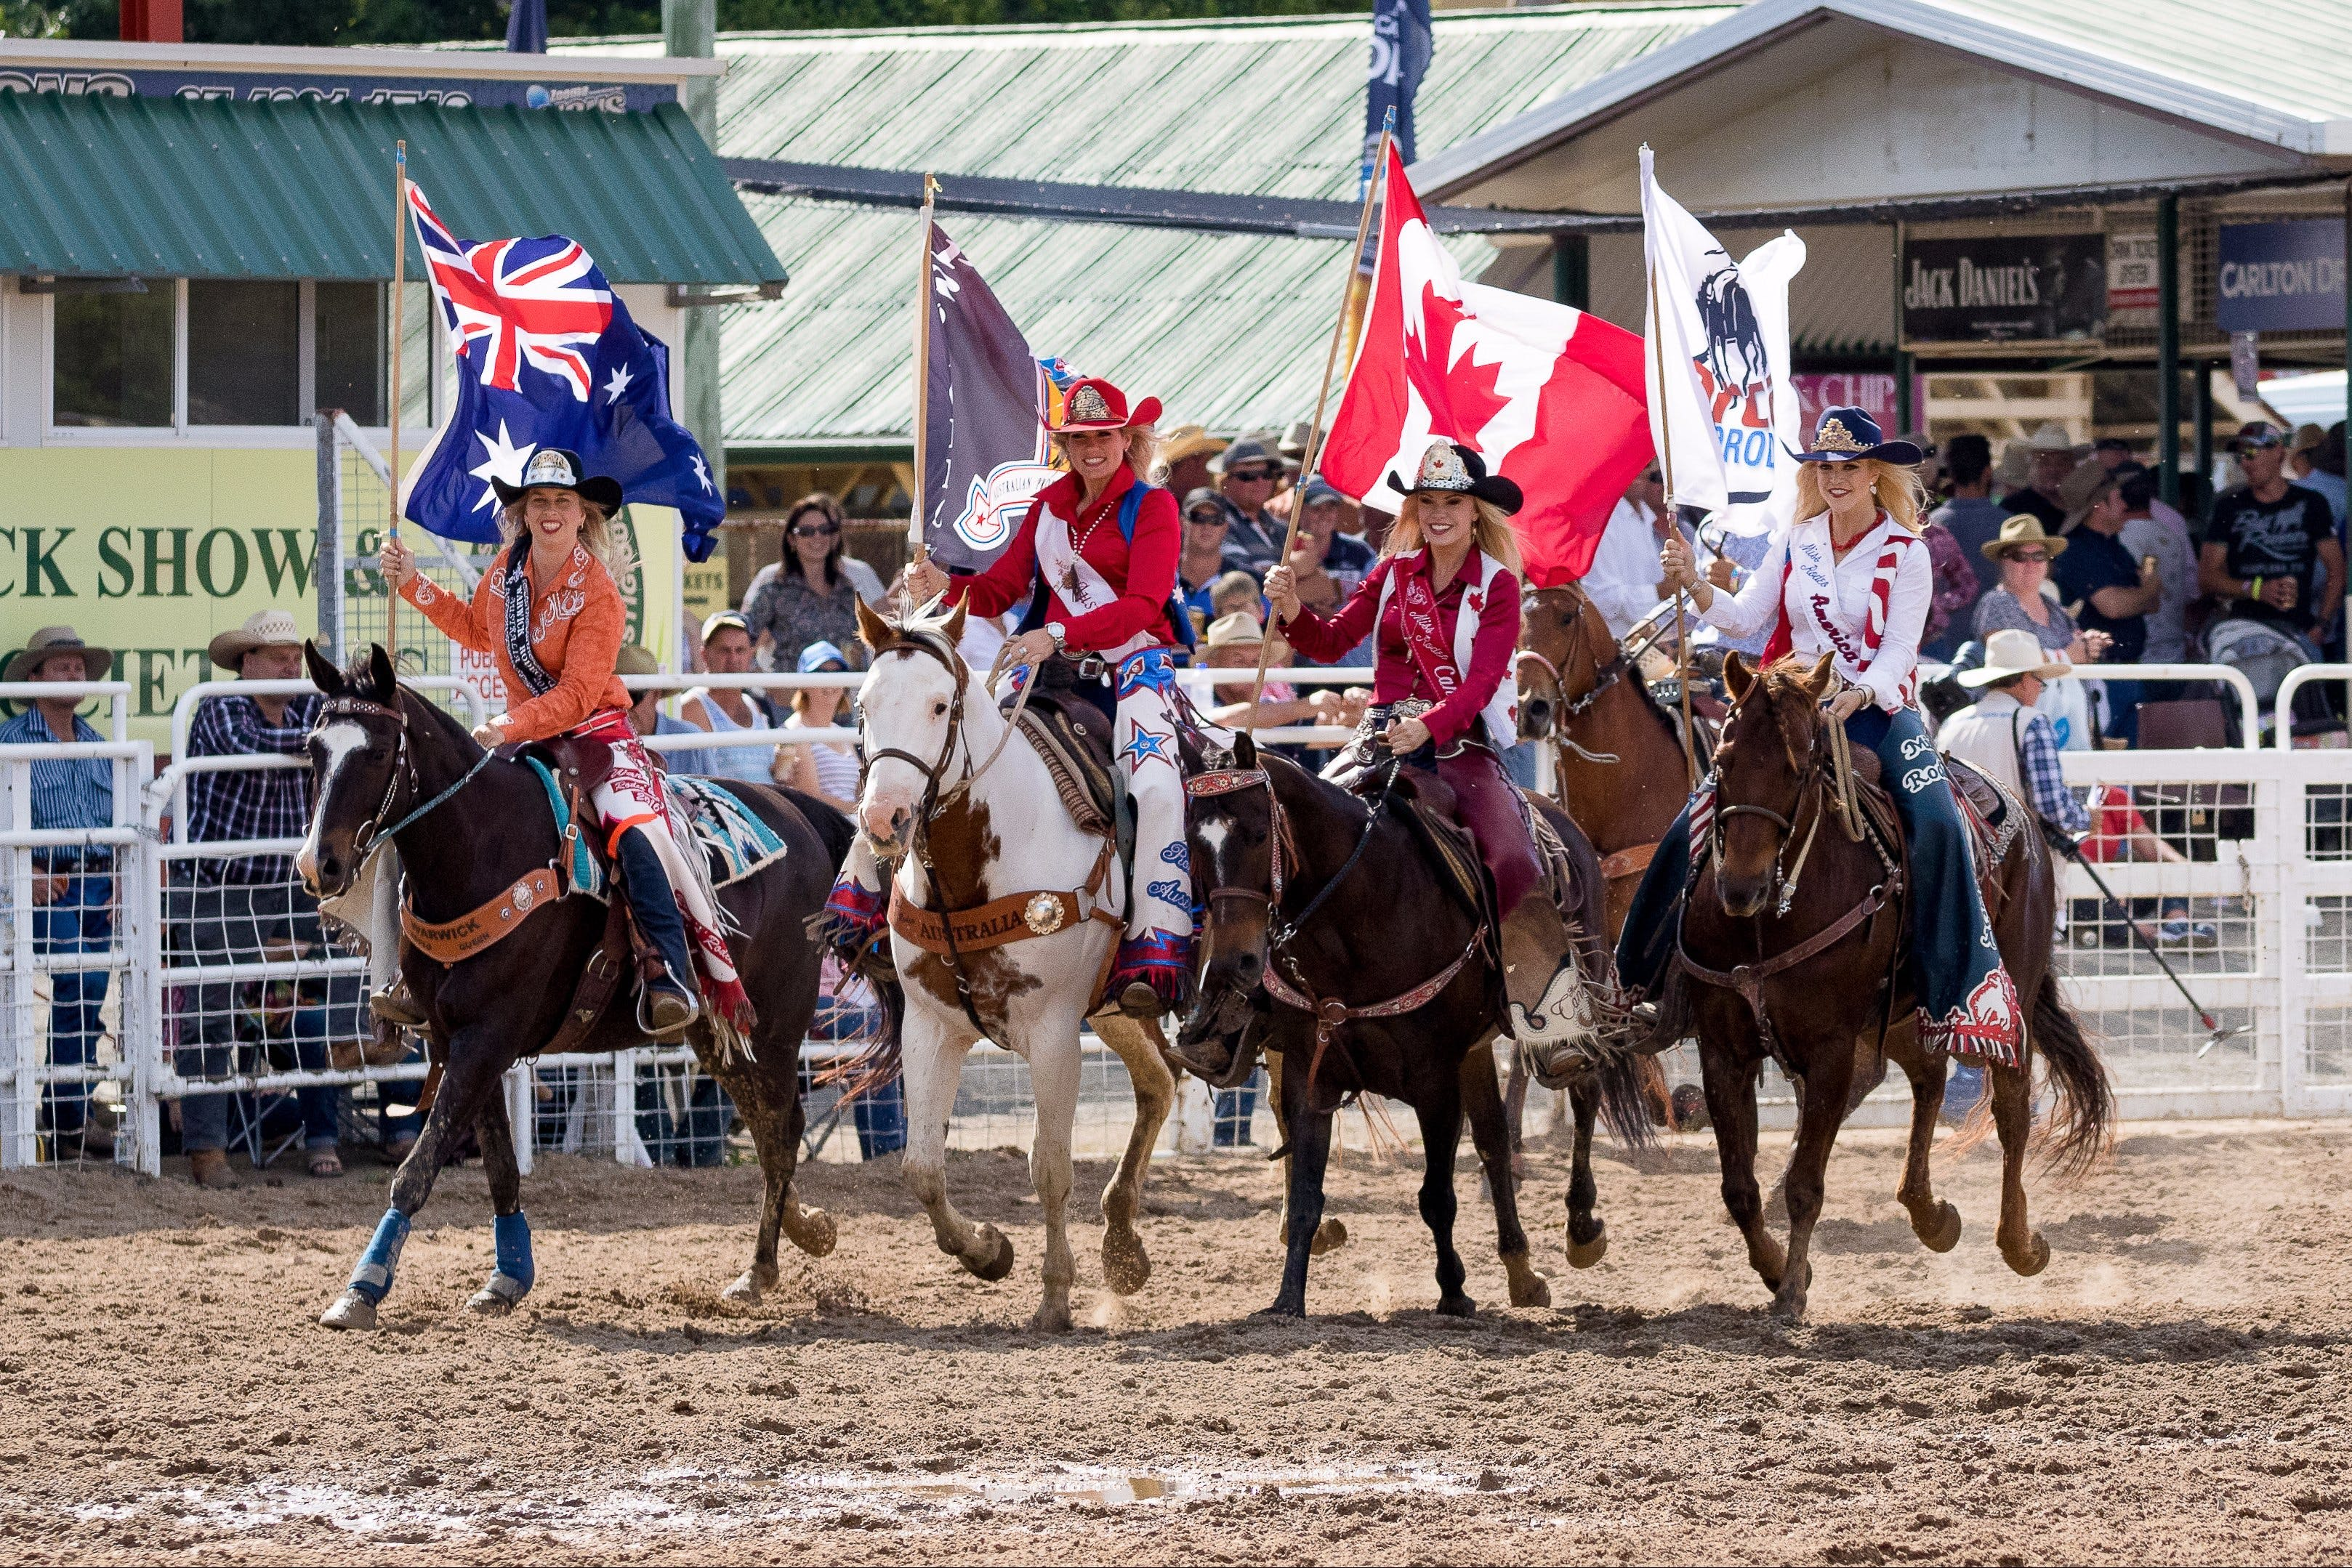 Warwick Rodeo National APRA National Finals and Warwick Gold Cup Campdraft - Accommodation in Brisbane